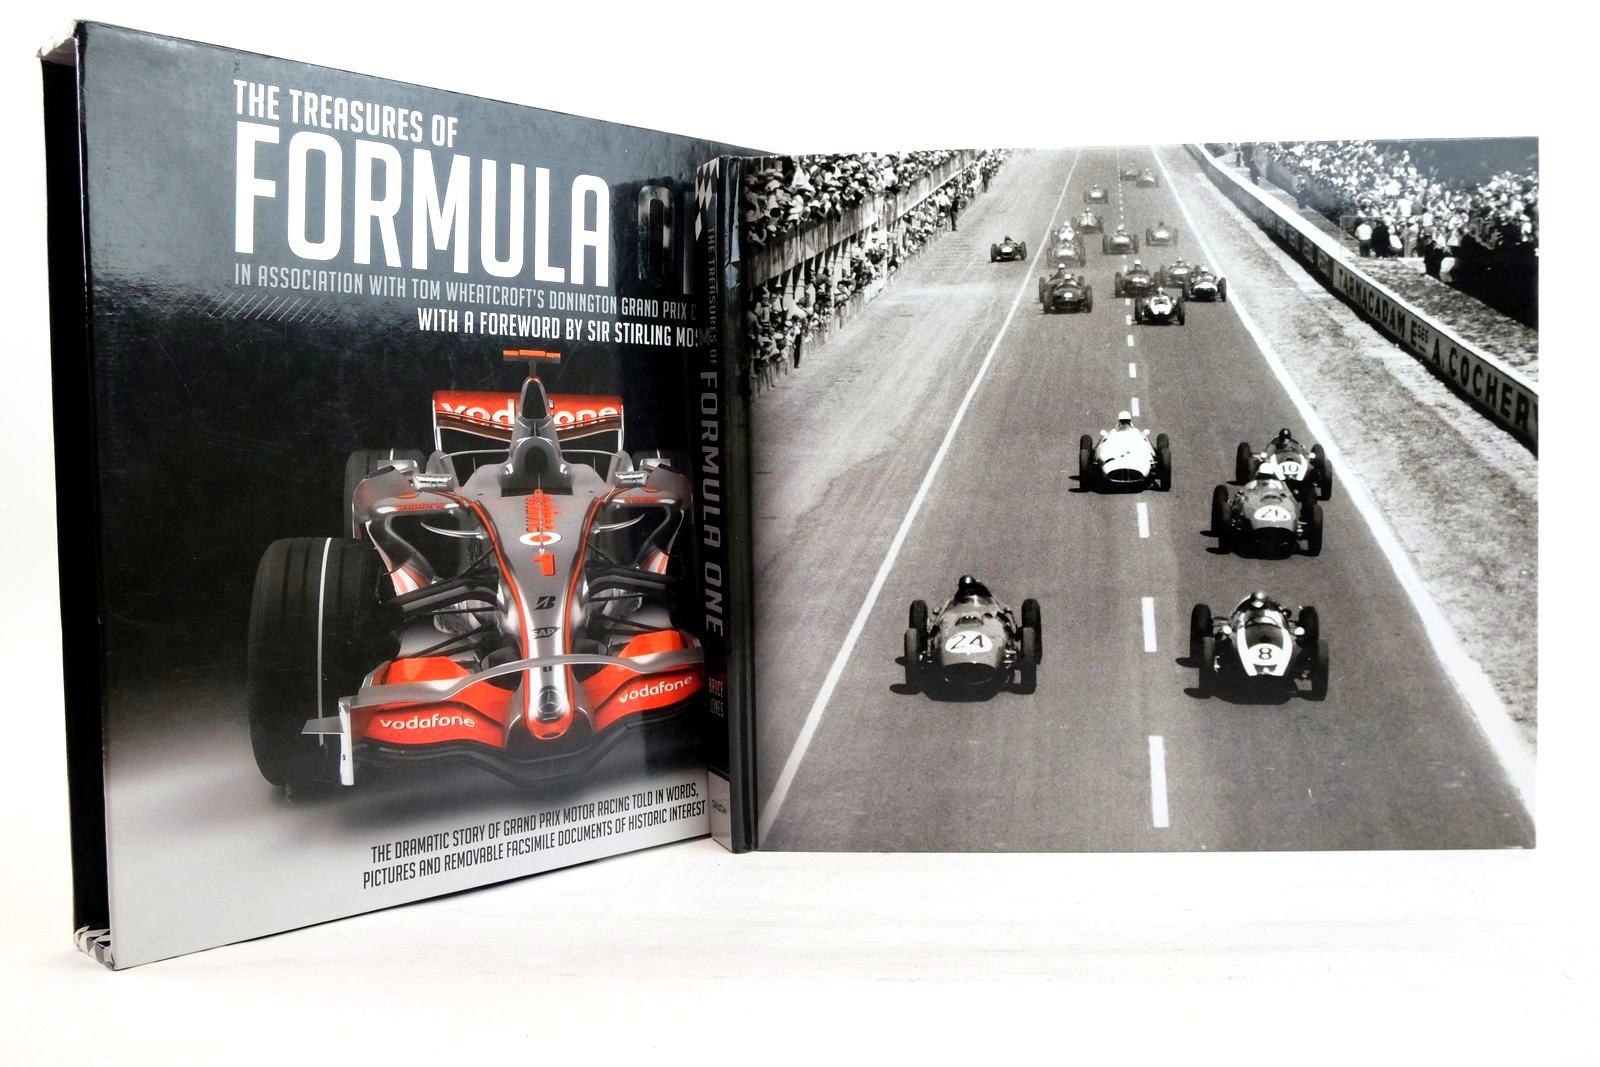 Photo of THE TREASURES OF FORMULA ONE IN ASSOCIATION WITH TOM WHEATCROFT'S DONINGTON GRAND PRIX COLLECTION written by Jones, Bruce published by Carlton Books Limited (STOCK CODE: 2134544)  for sale by Stella & Rose's Books